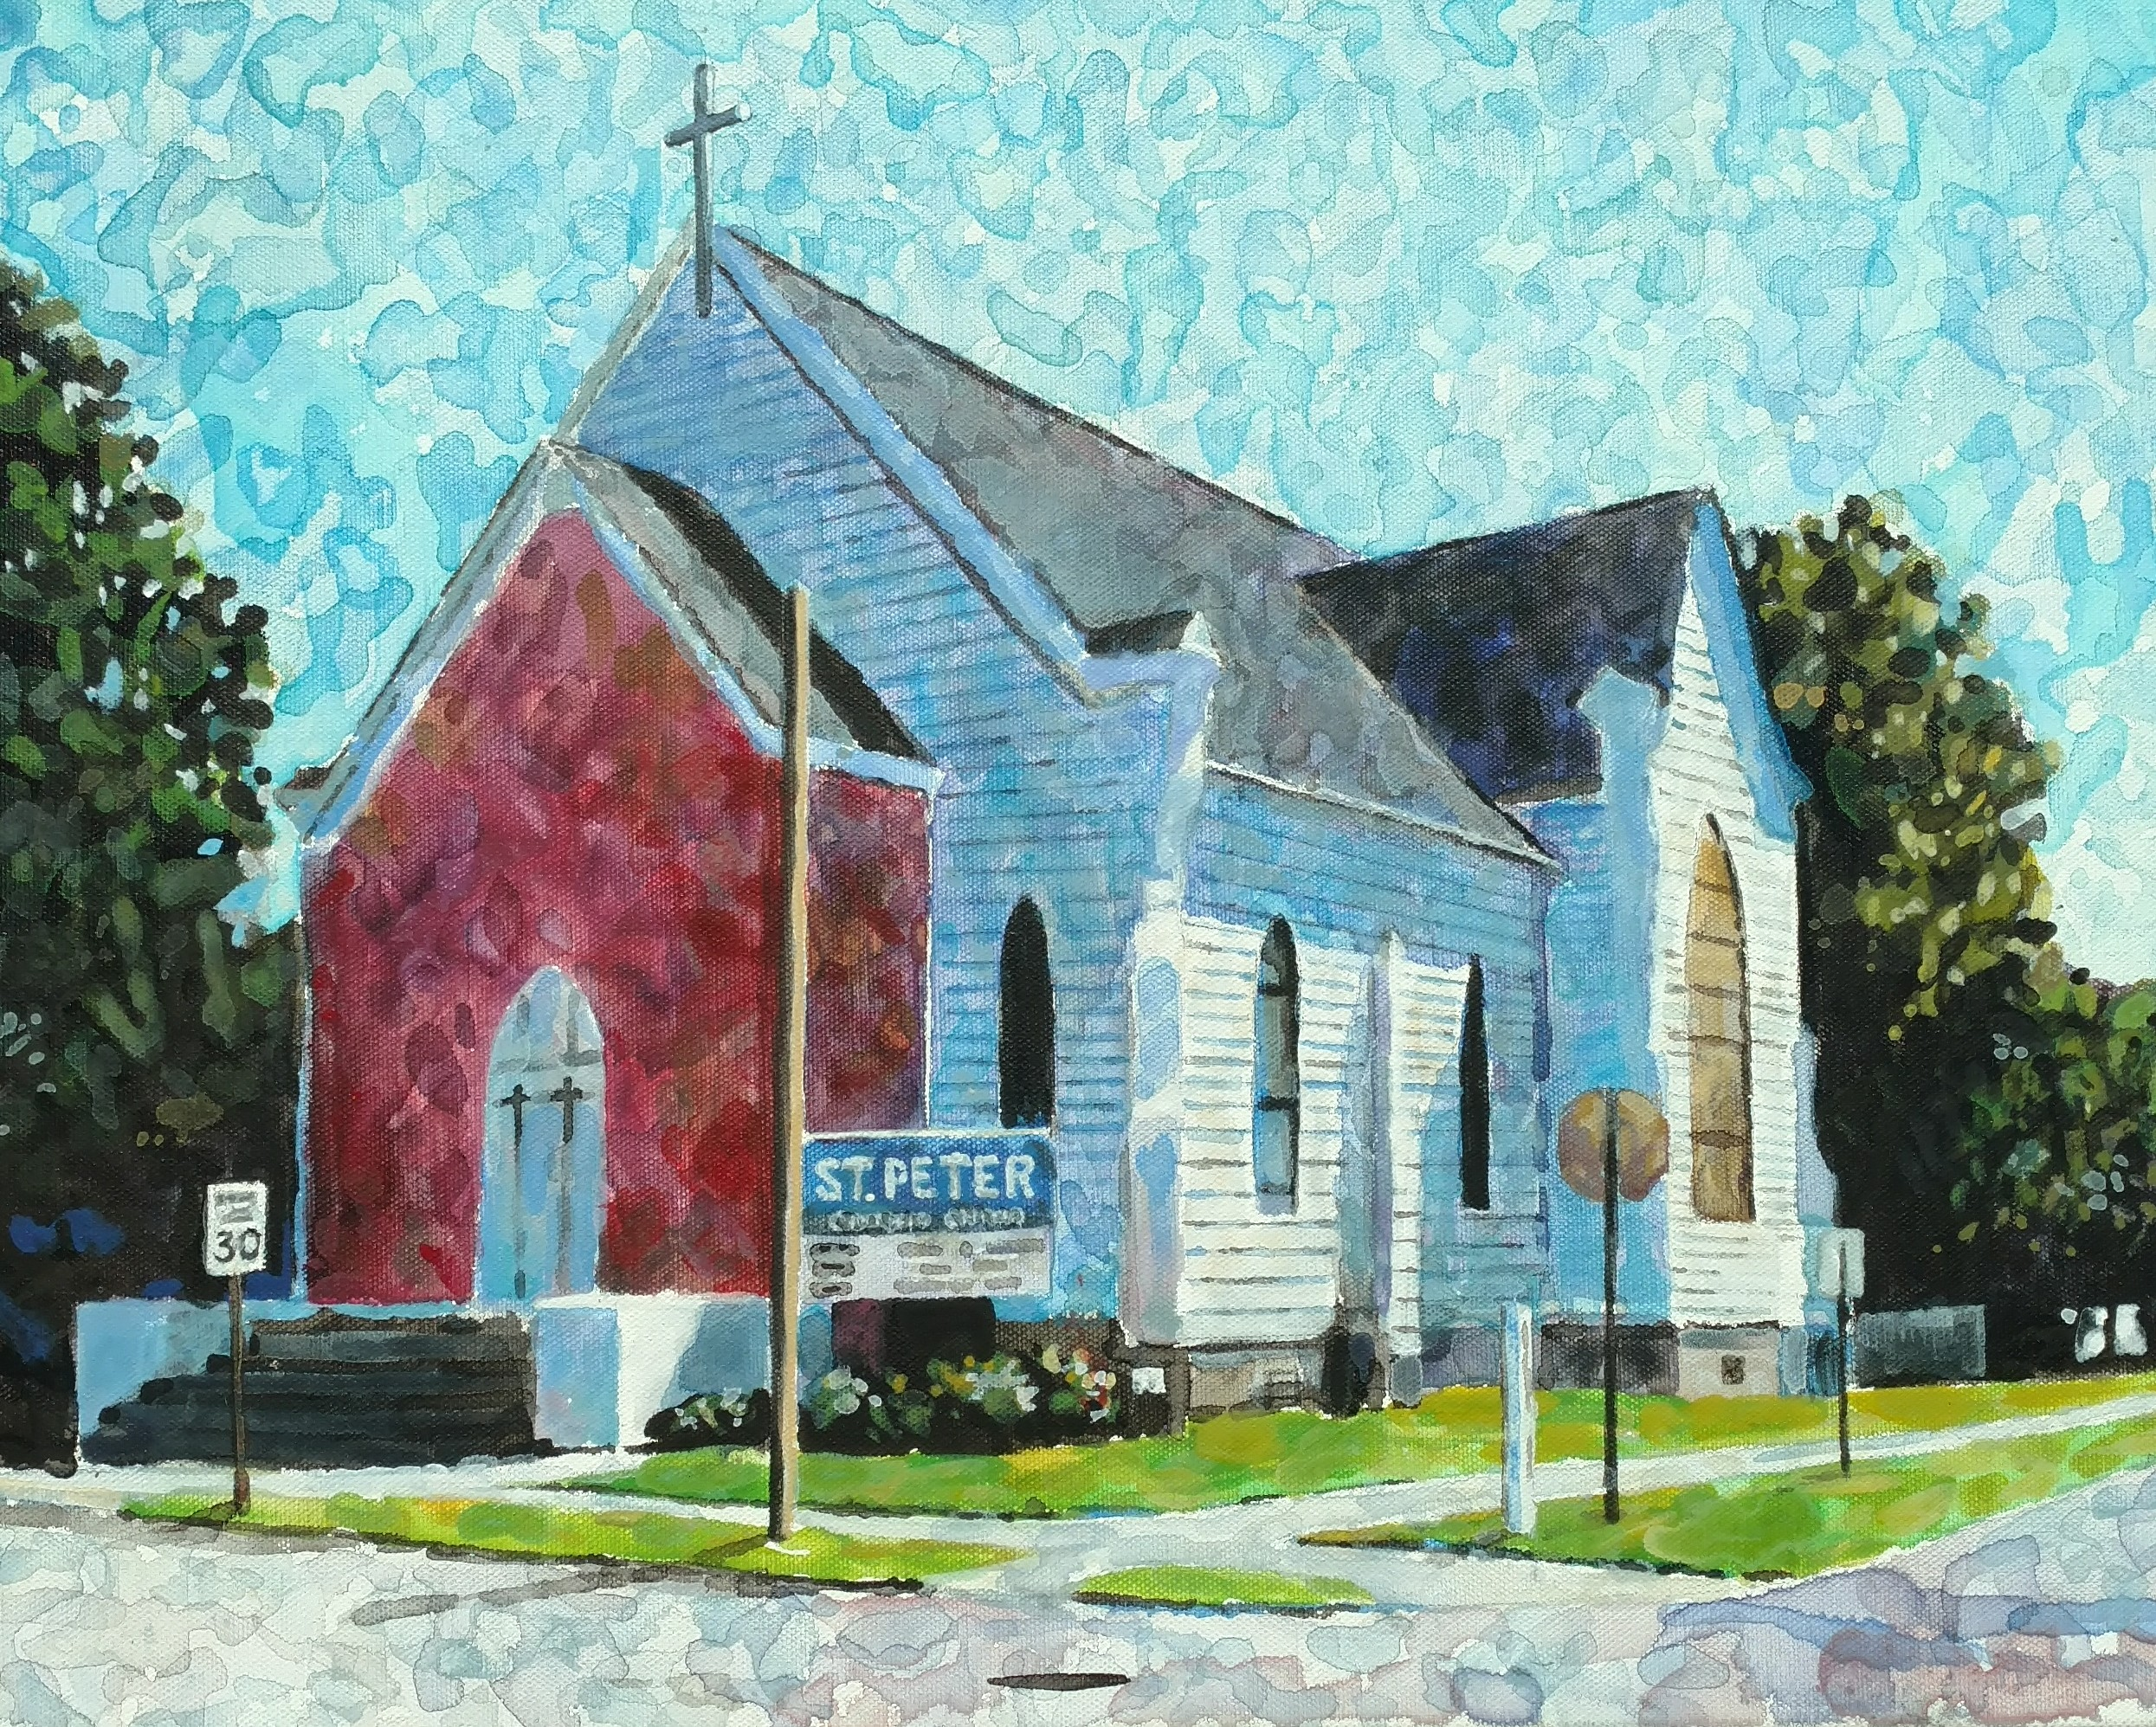 Second attempt at one of my favorite Pine Bluff churches